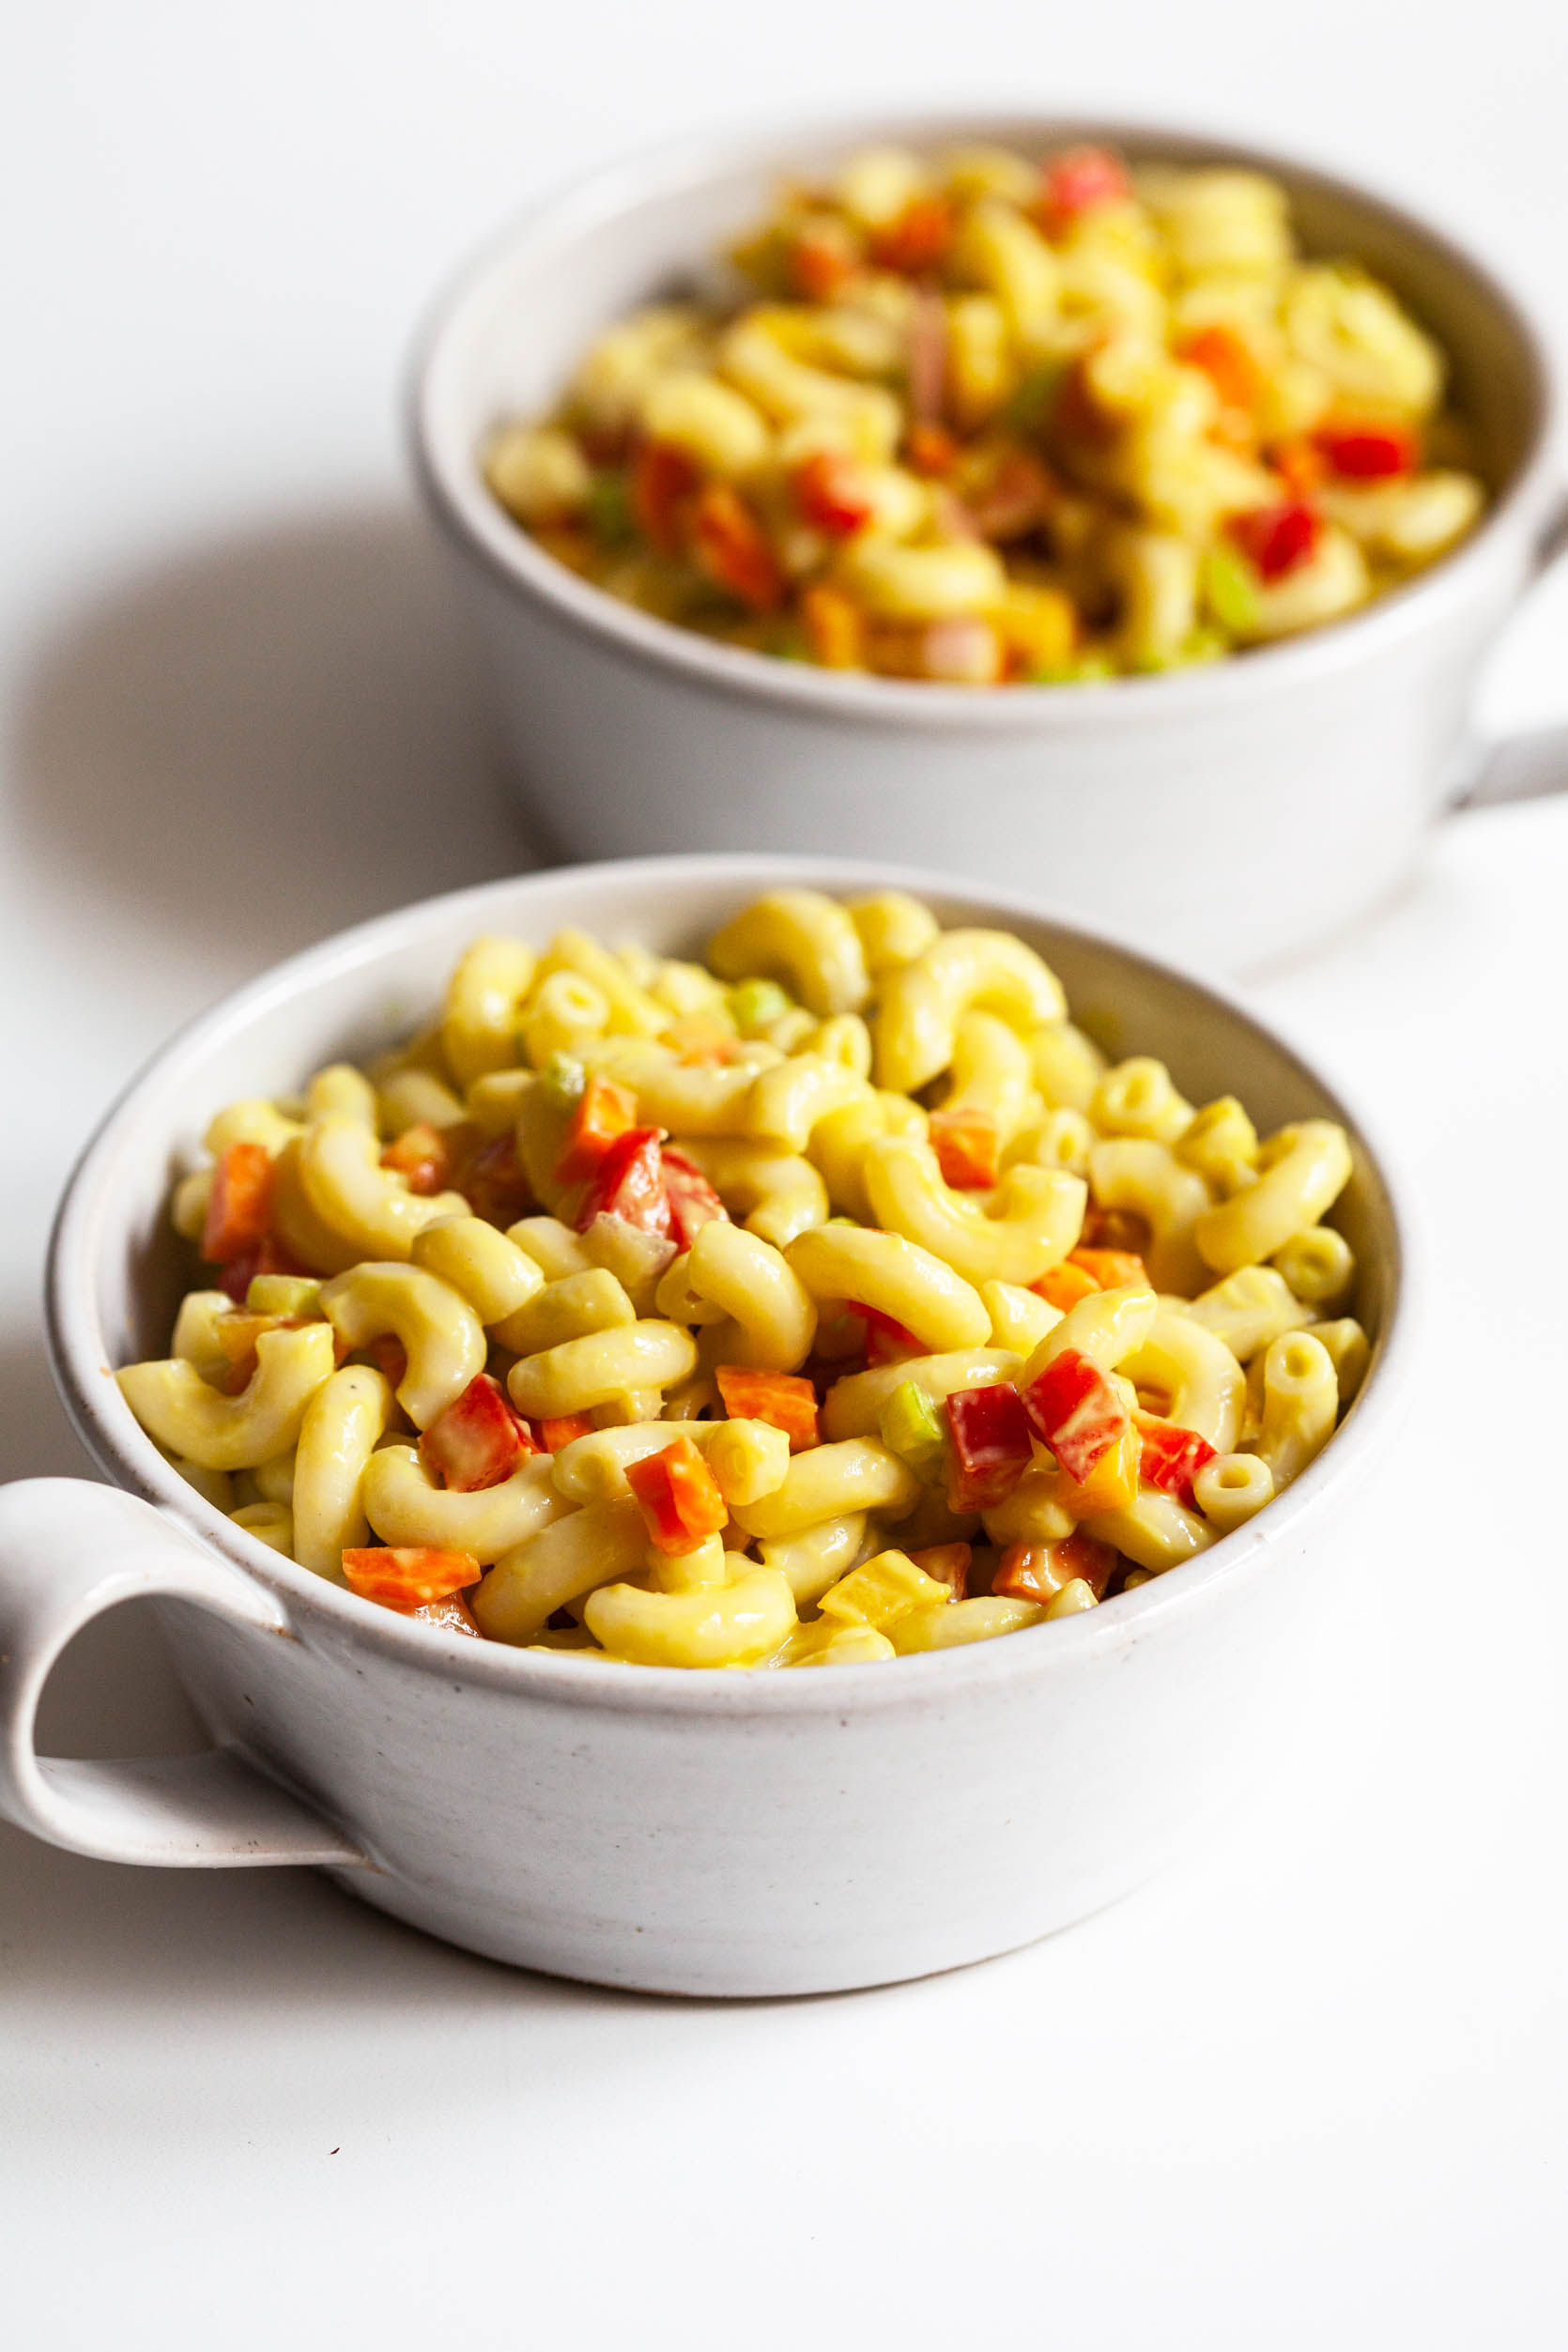 Creamy Avocado Macaroni Salad | The Full Helping